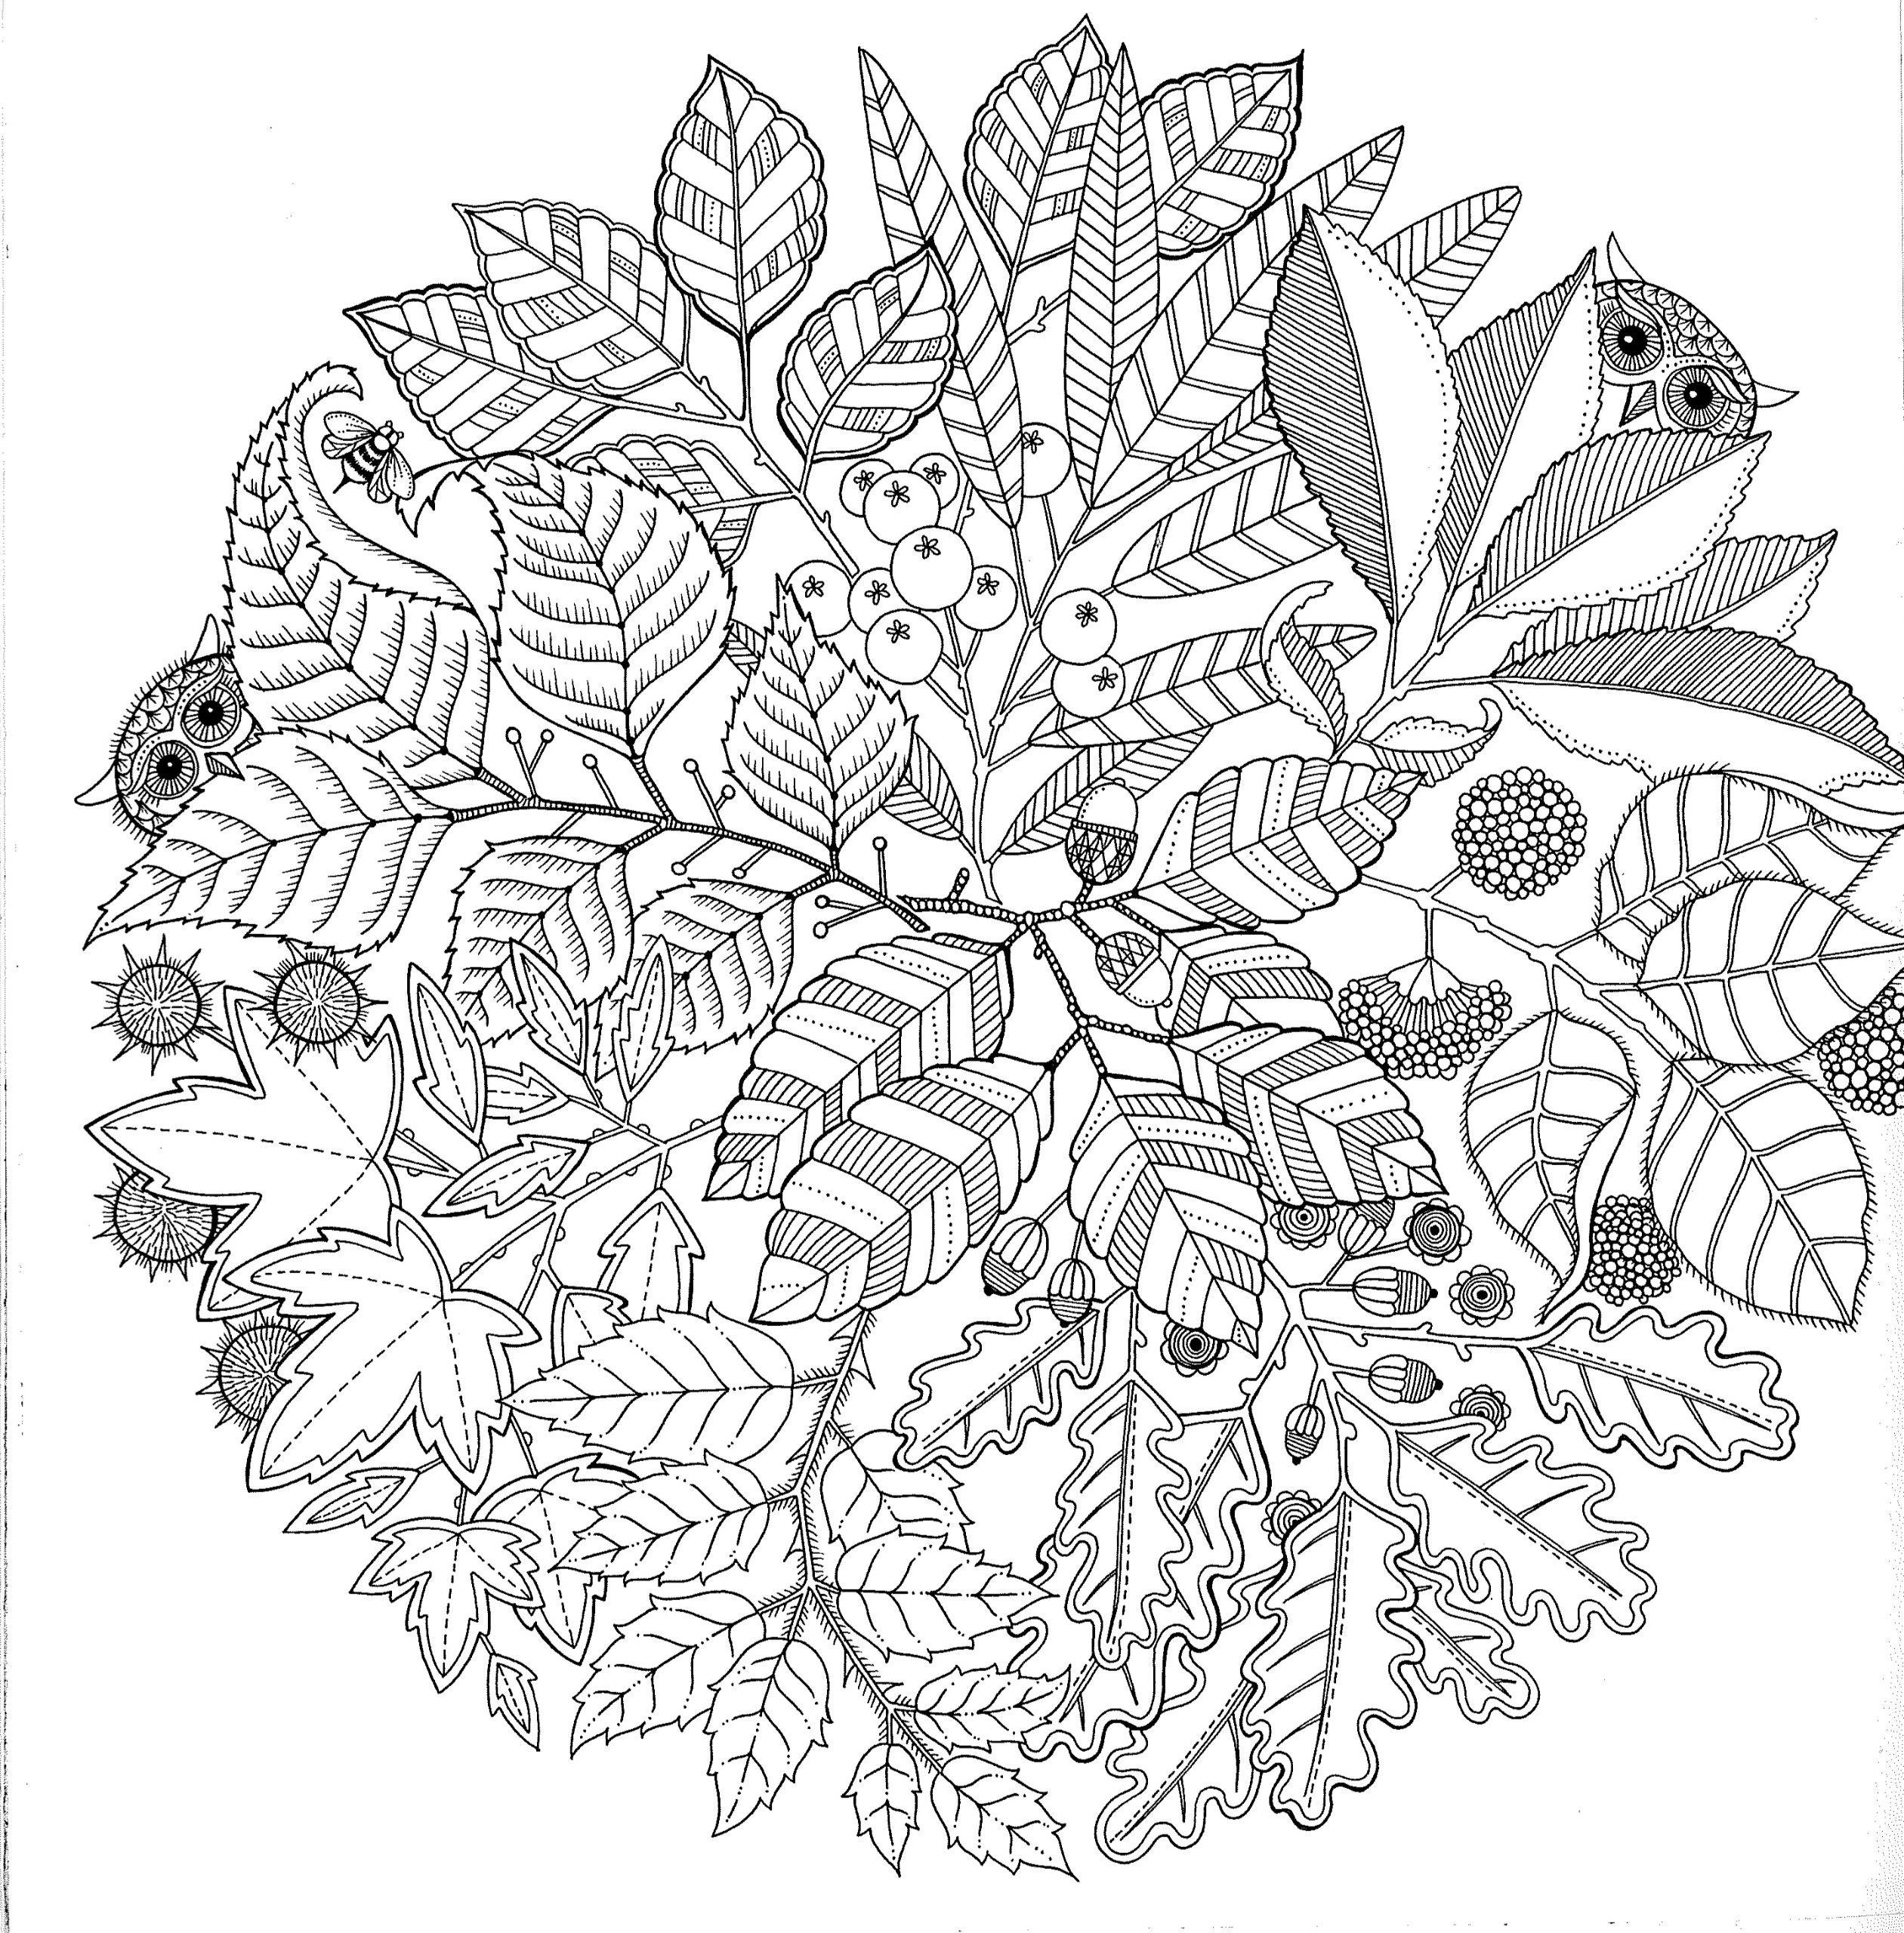 Best ideas about Colorama Free Coloring Pages . Save or Pin Mandala Boyama Resimleri 2017 Now.